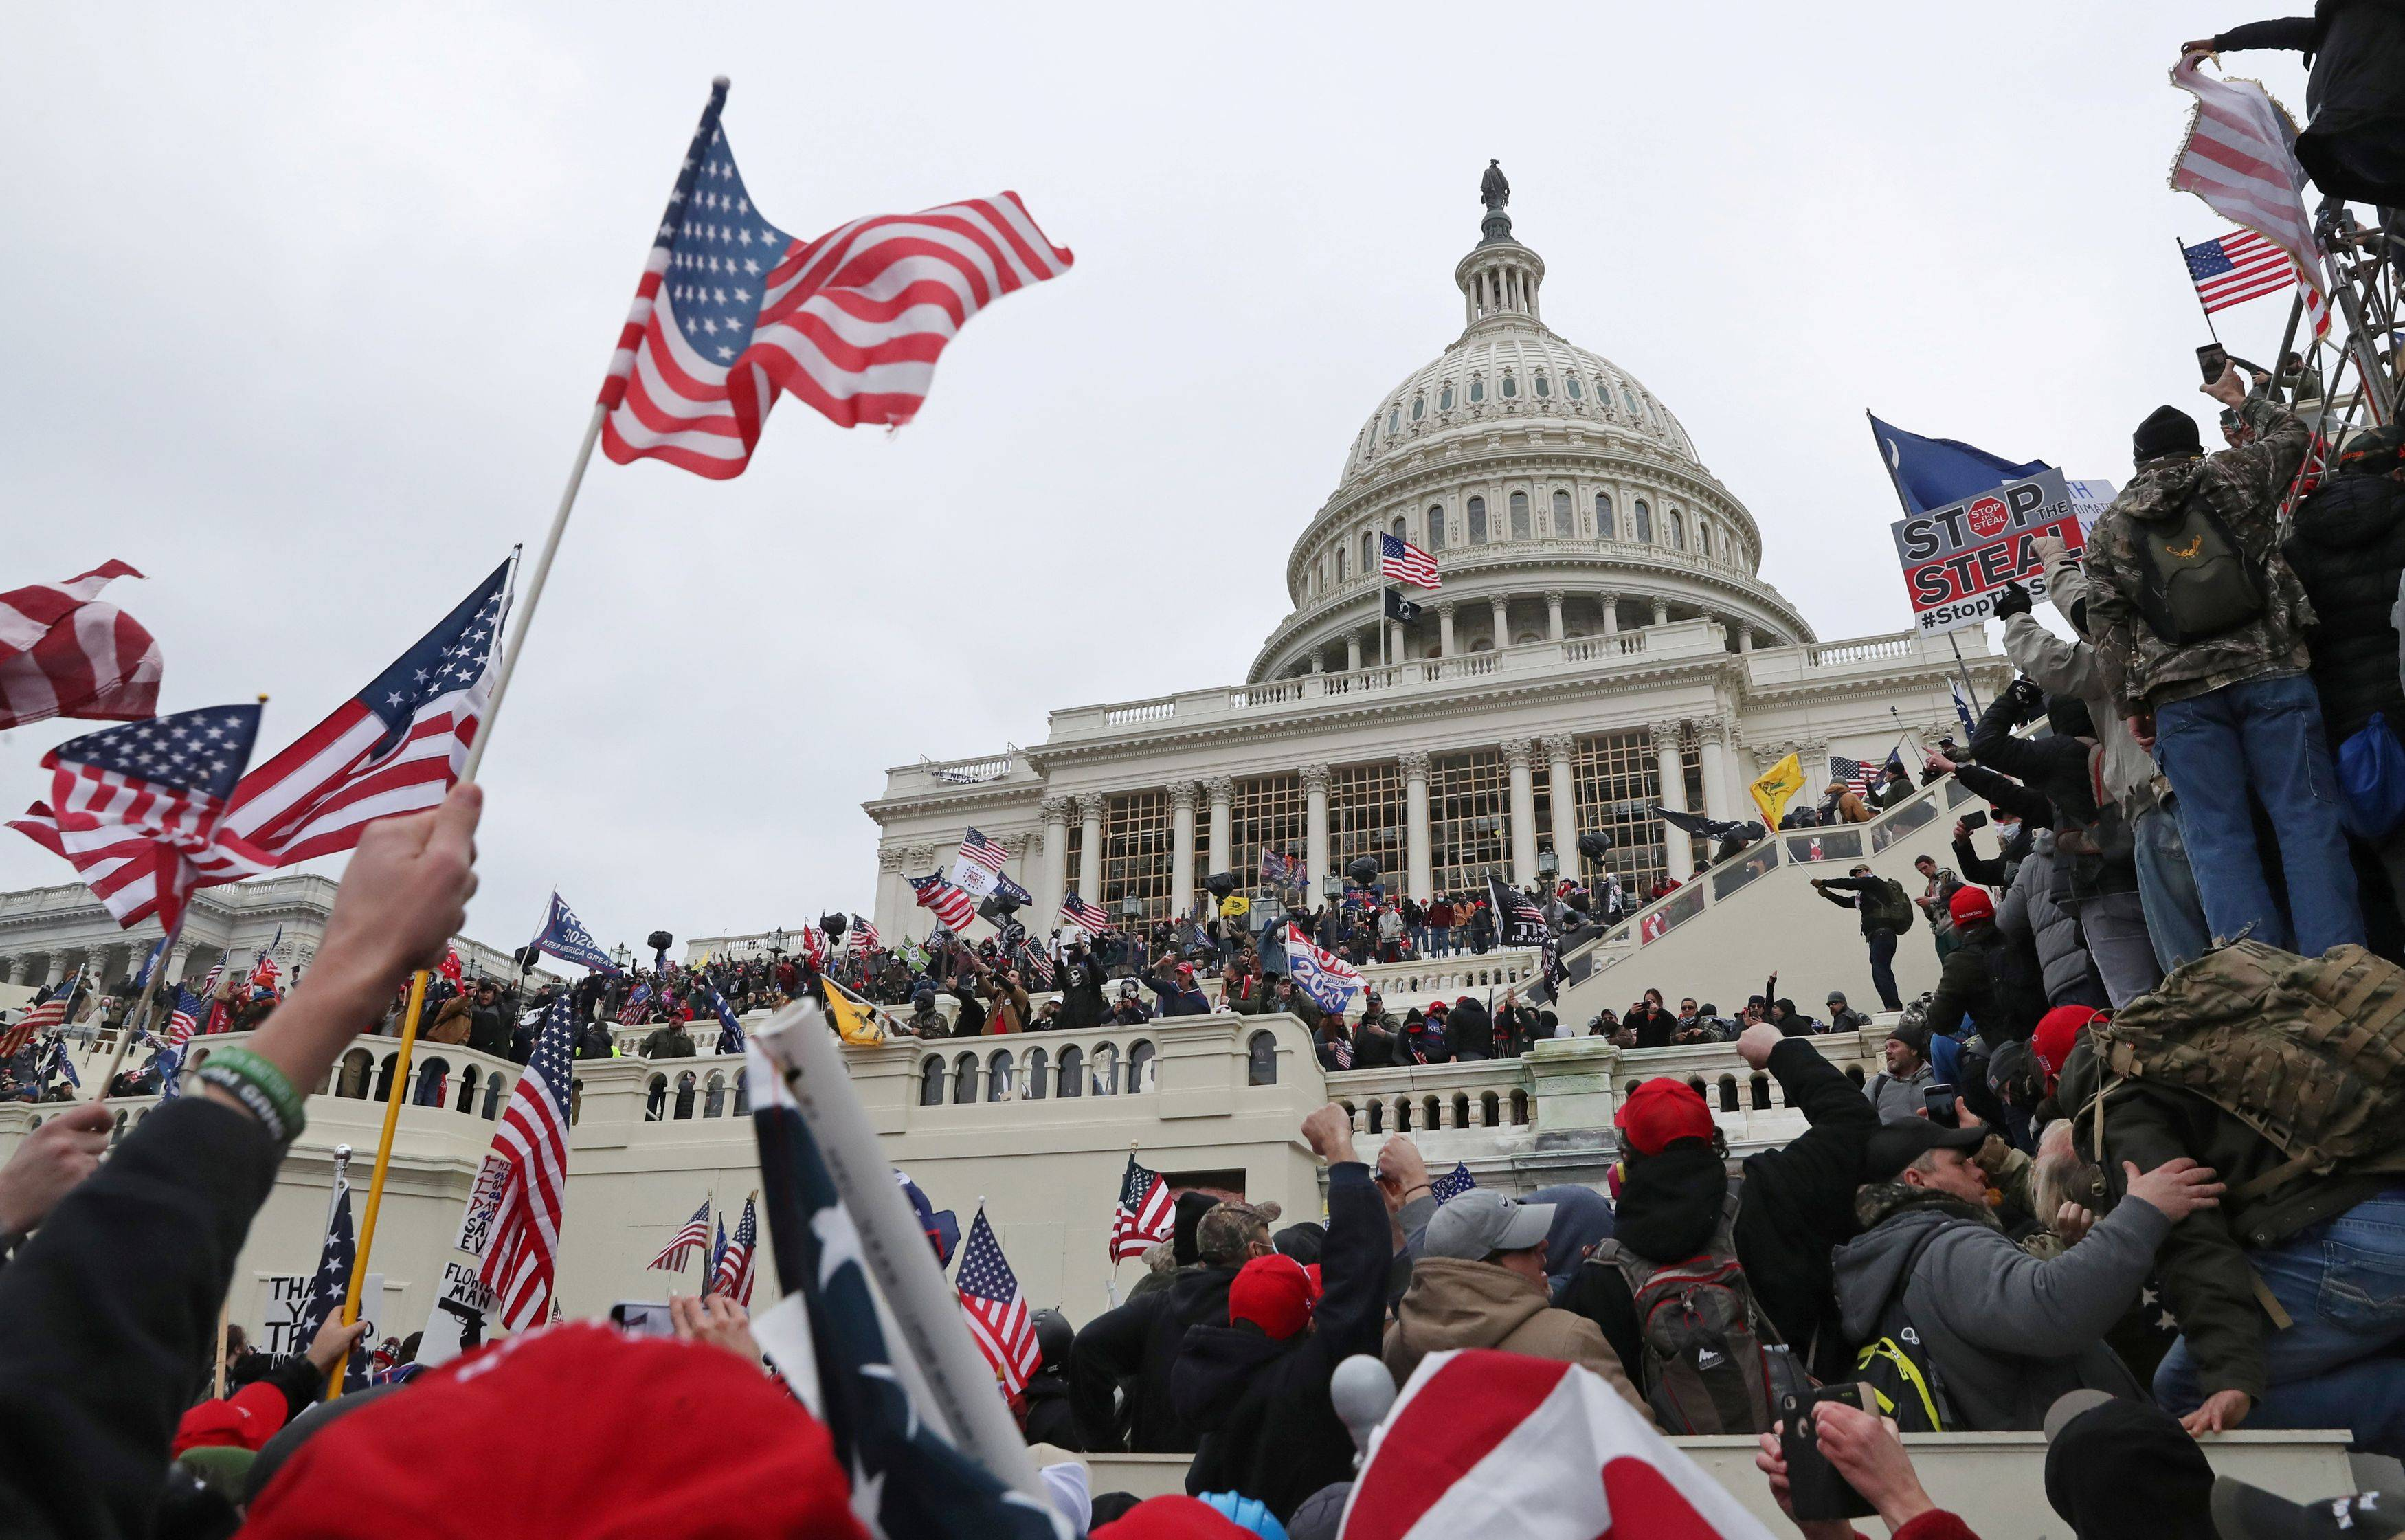 A mob of supporters of President Trump storm the U.S. Capitol in Washington on Jan. 6. (Leah Millis/Reuters)